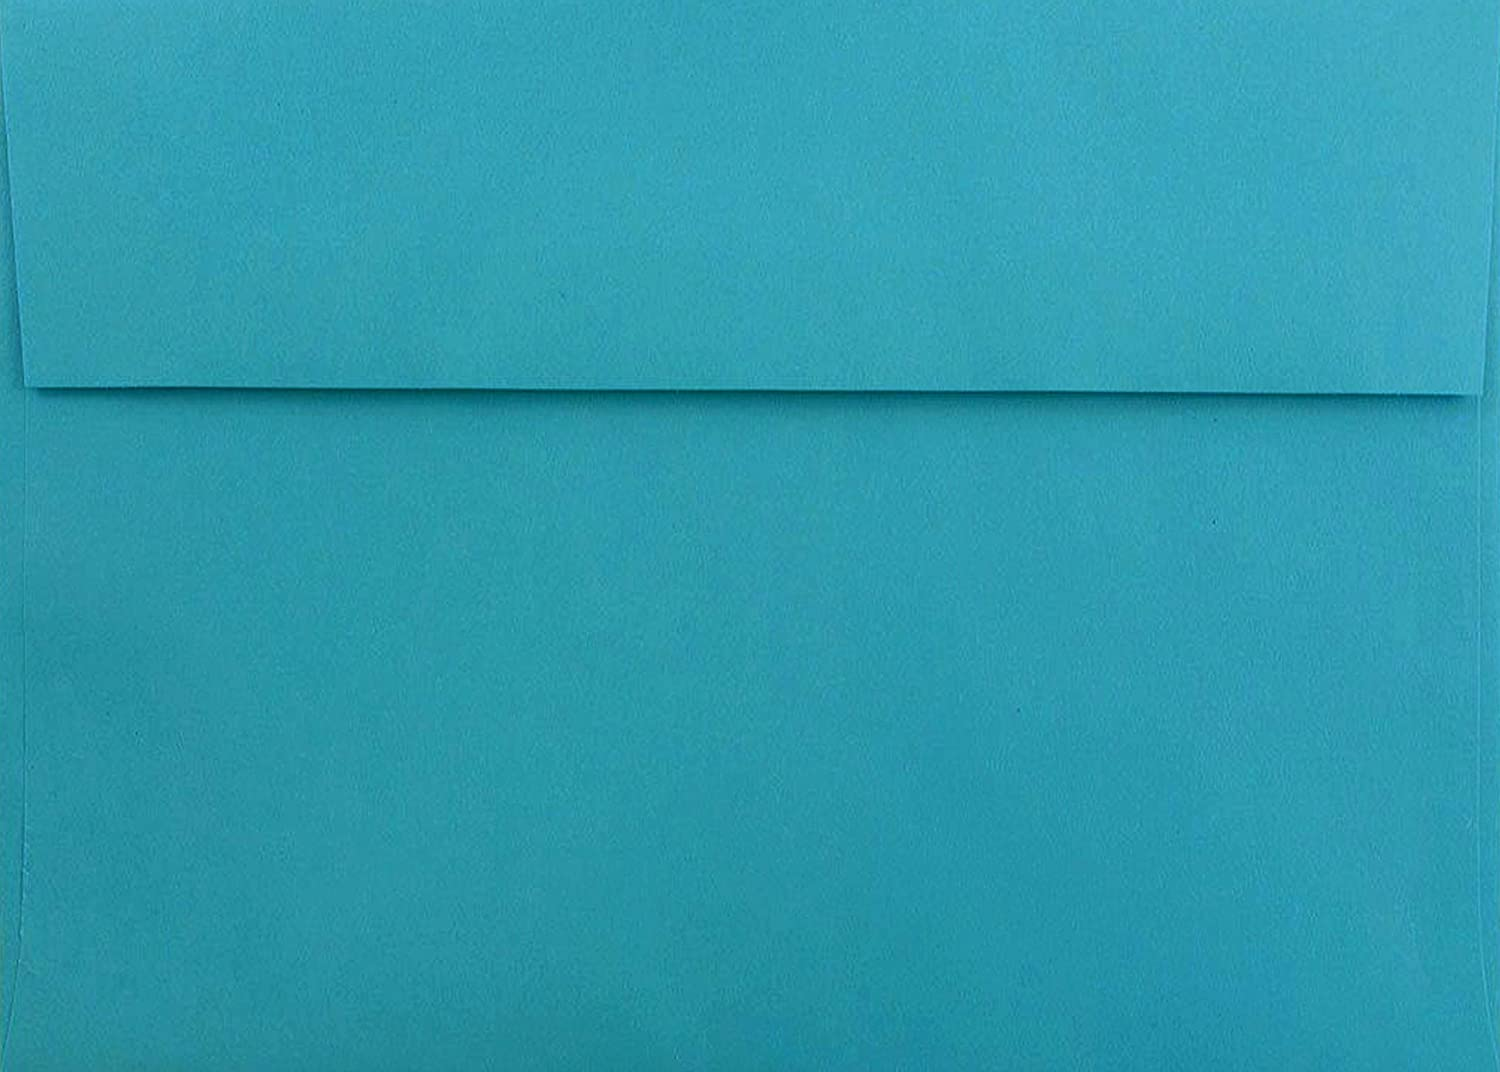 Teal Aqua 25 Pack A7 Envelopes 5.25 5 Classic In x Philadelphia Mall Cards 7 for 7.25